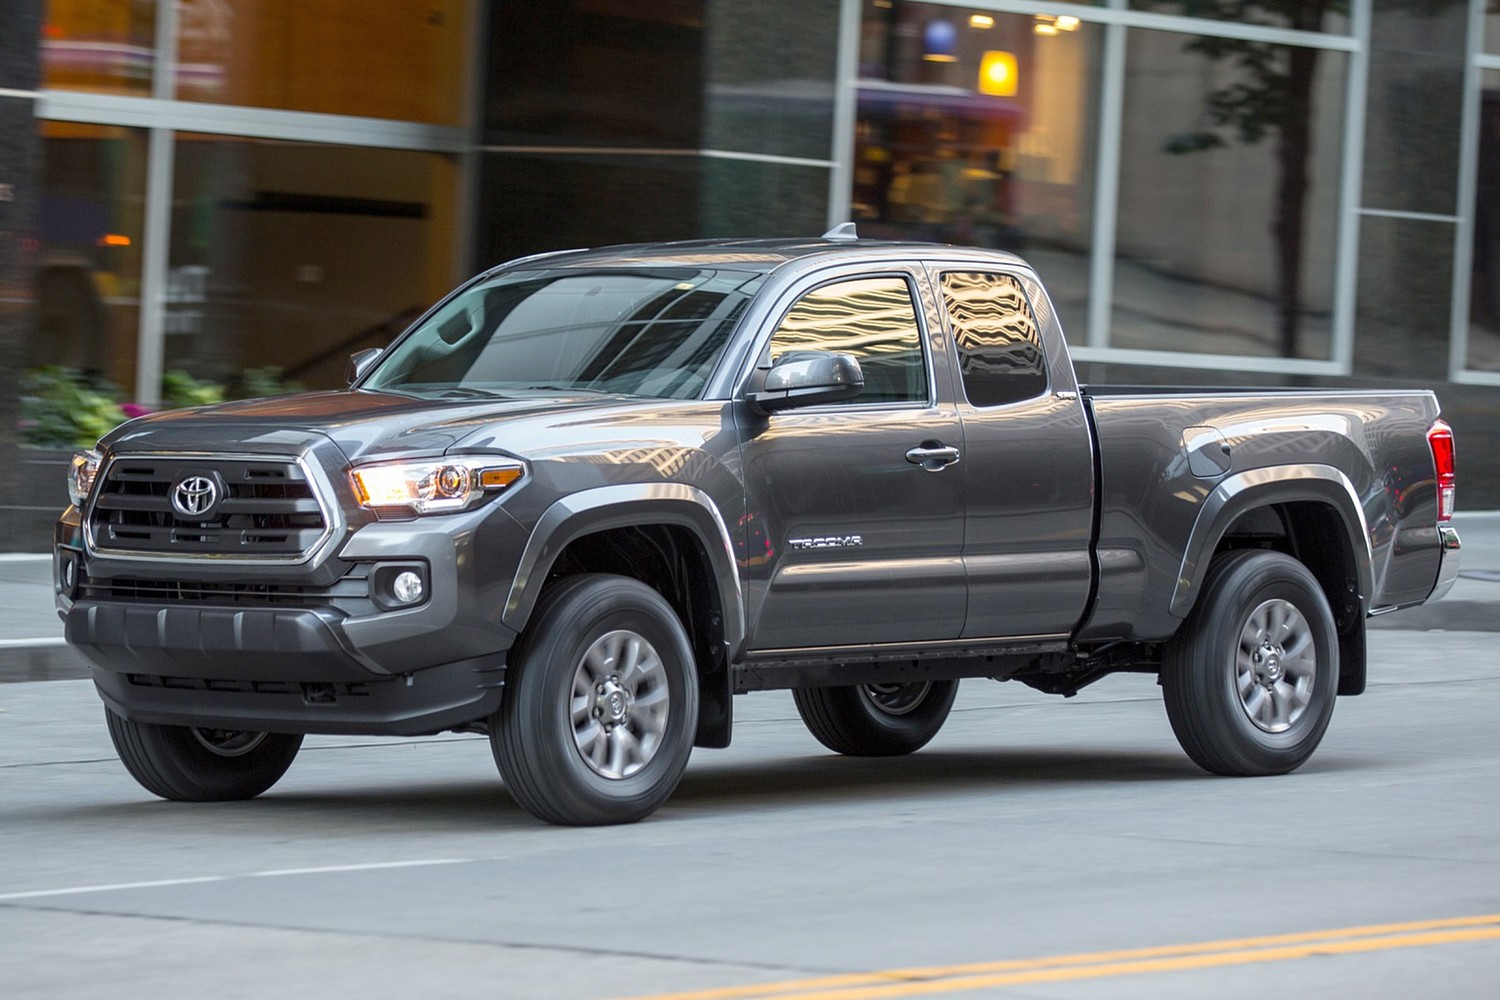 2016 Toyota Tacoma SR5 Extended Cab Pickup Exterior Shown